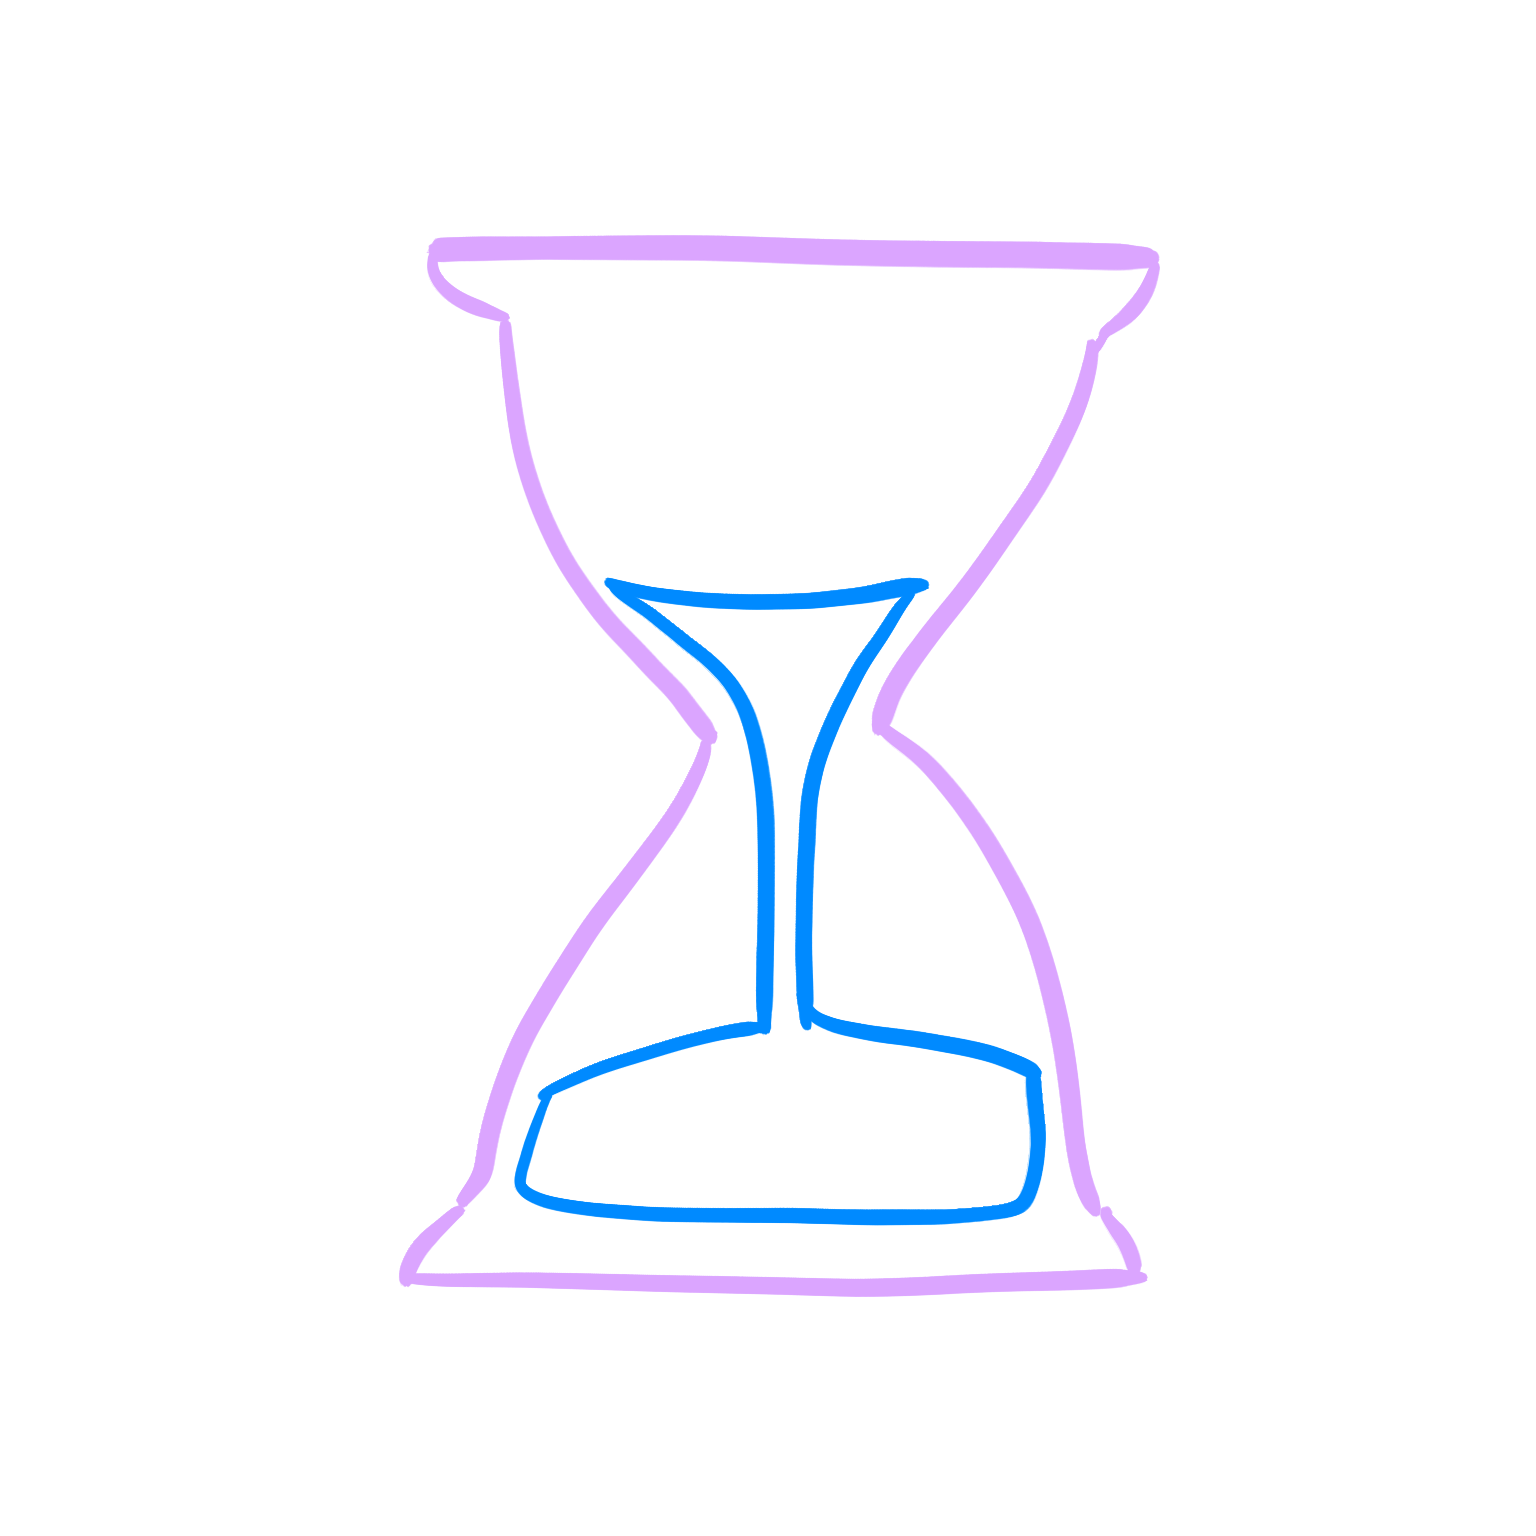 An image of an hourglass, signifying waiting